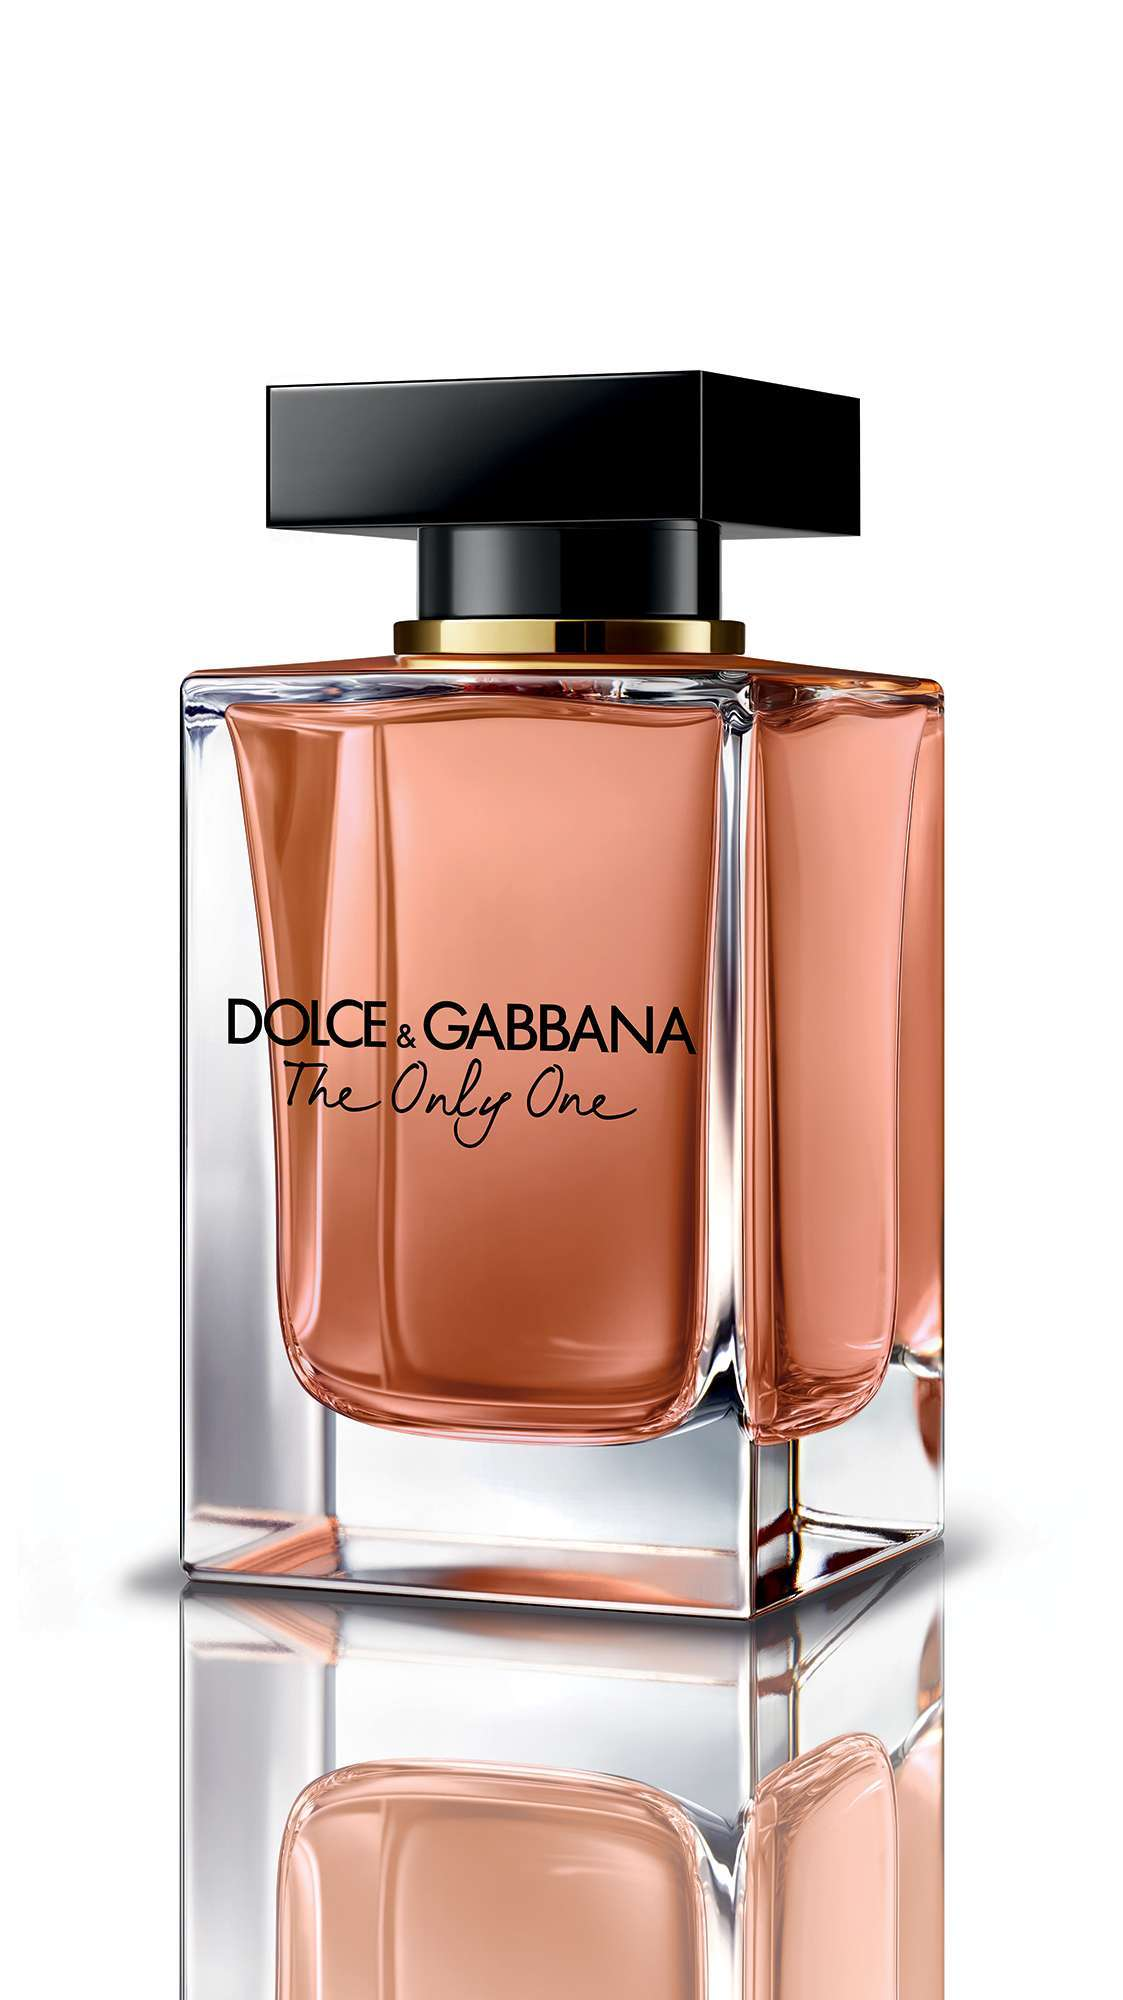 The Only One di Dolce e Gabbana Beauty